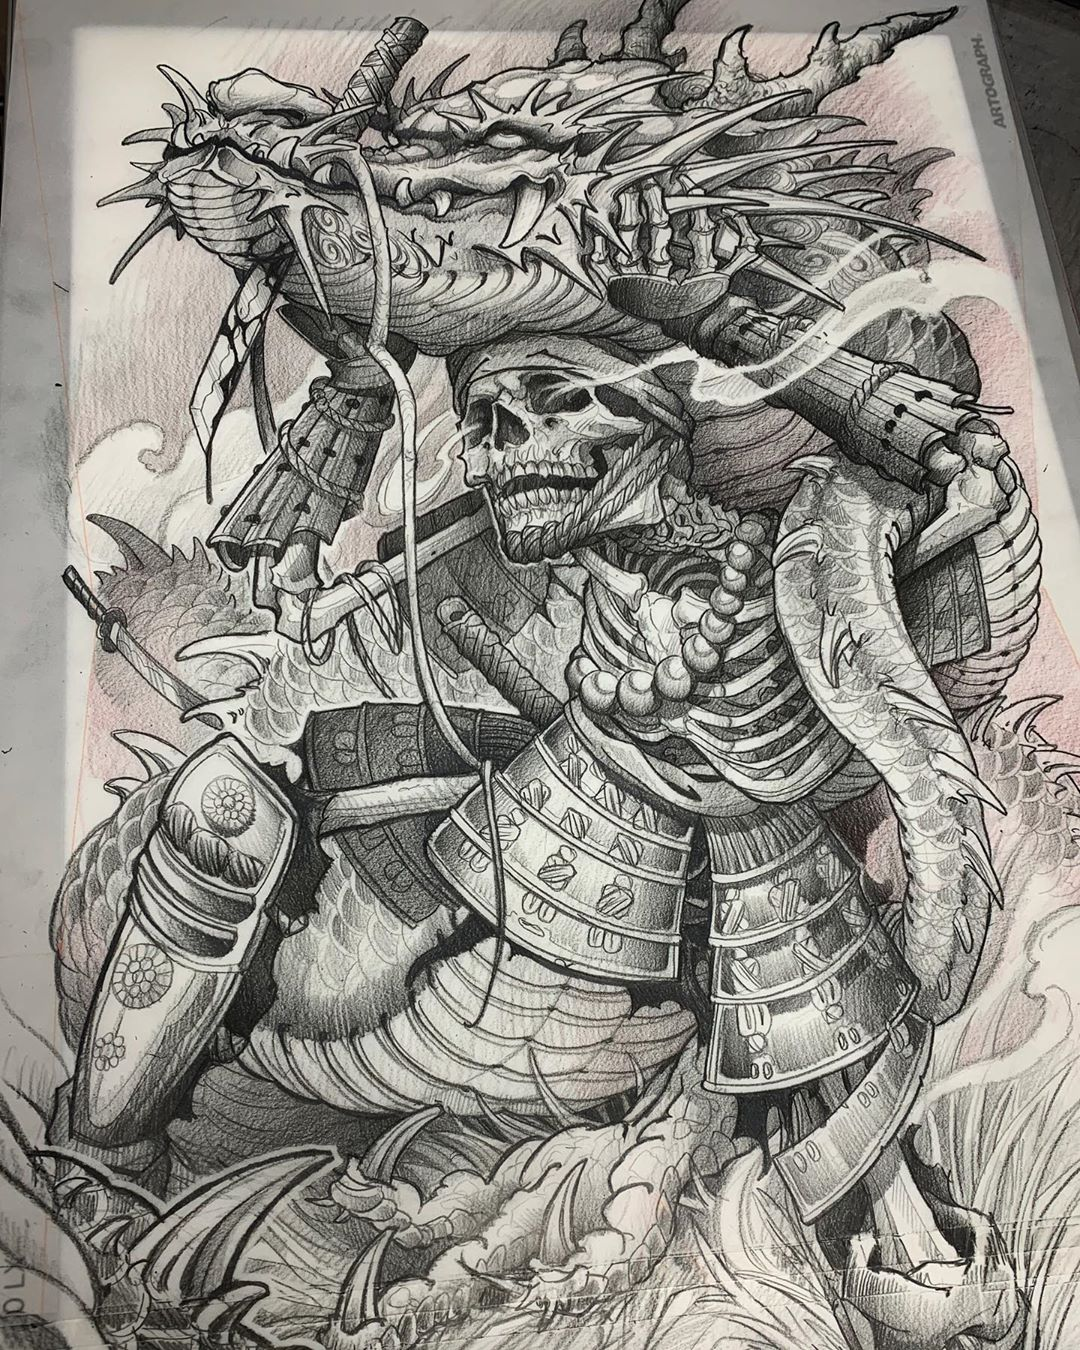 Japanese Style Sketch, Skeleton Samurai and the Prey Crocodile